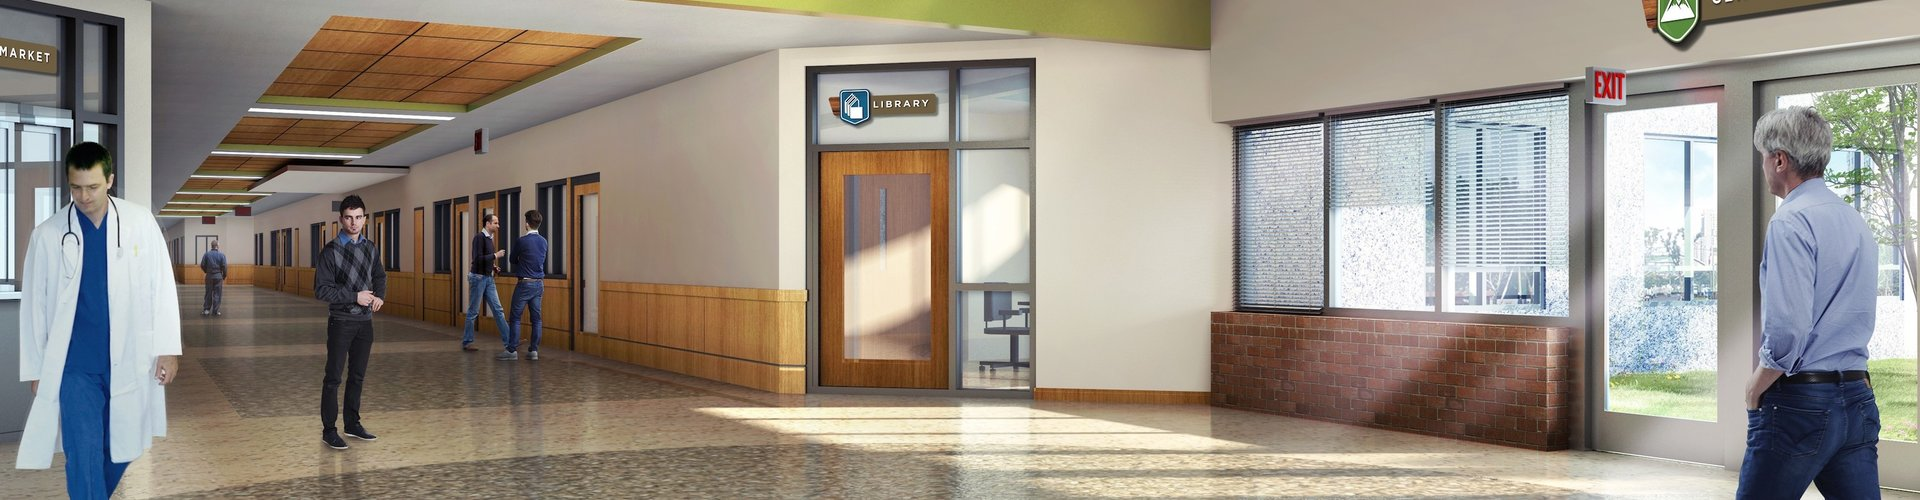 Virginia Center For Behavioral Rehabilitation, Submitted By HDR, Inc.